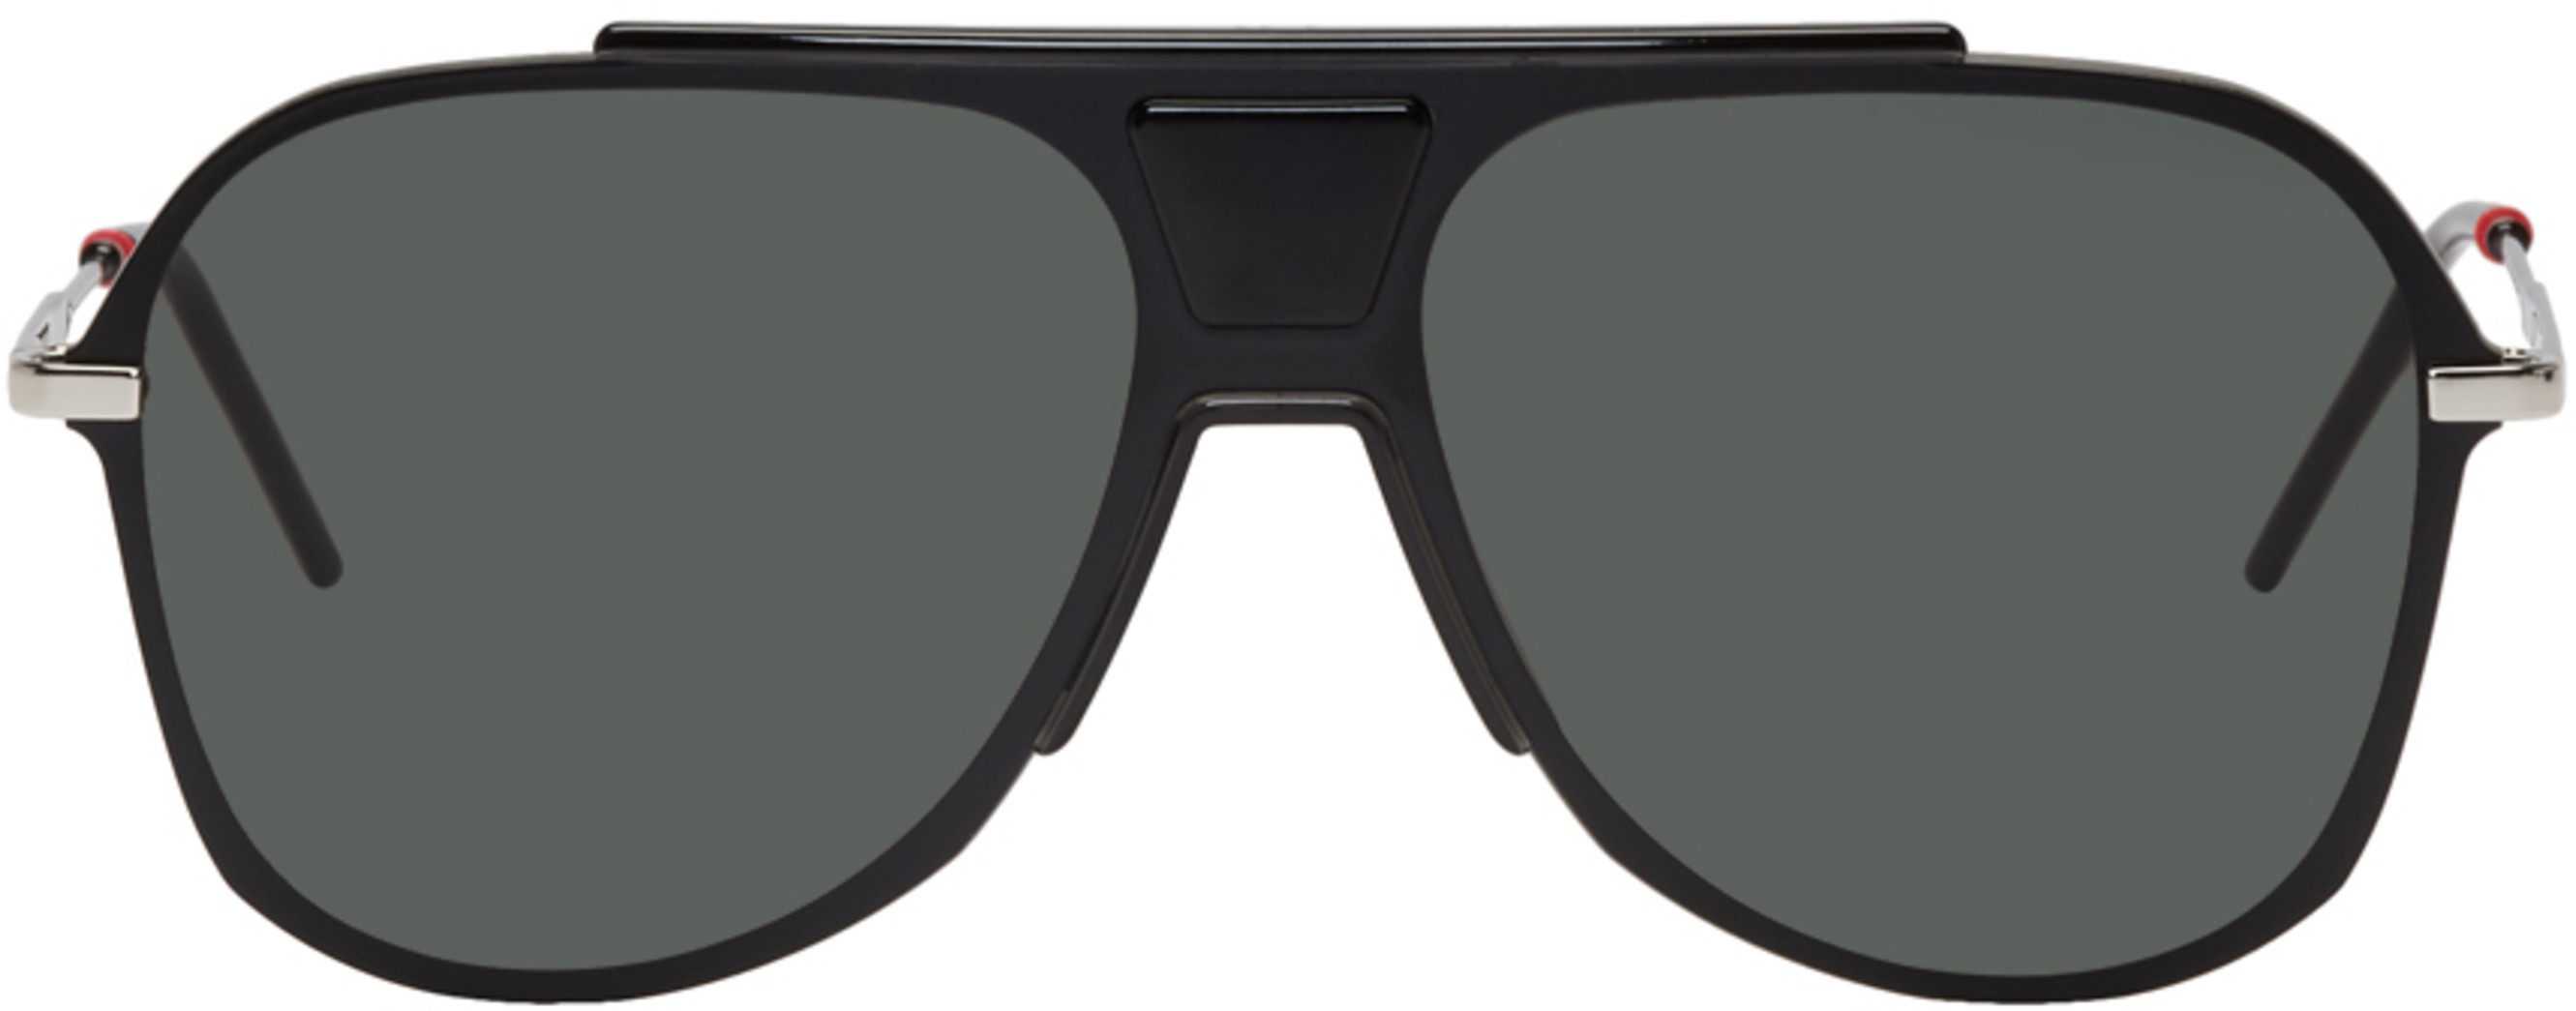 f4131579e16 Dior Homme for Men SS19 Collection